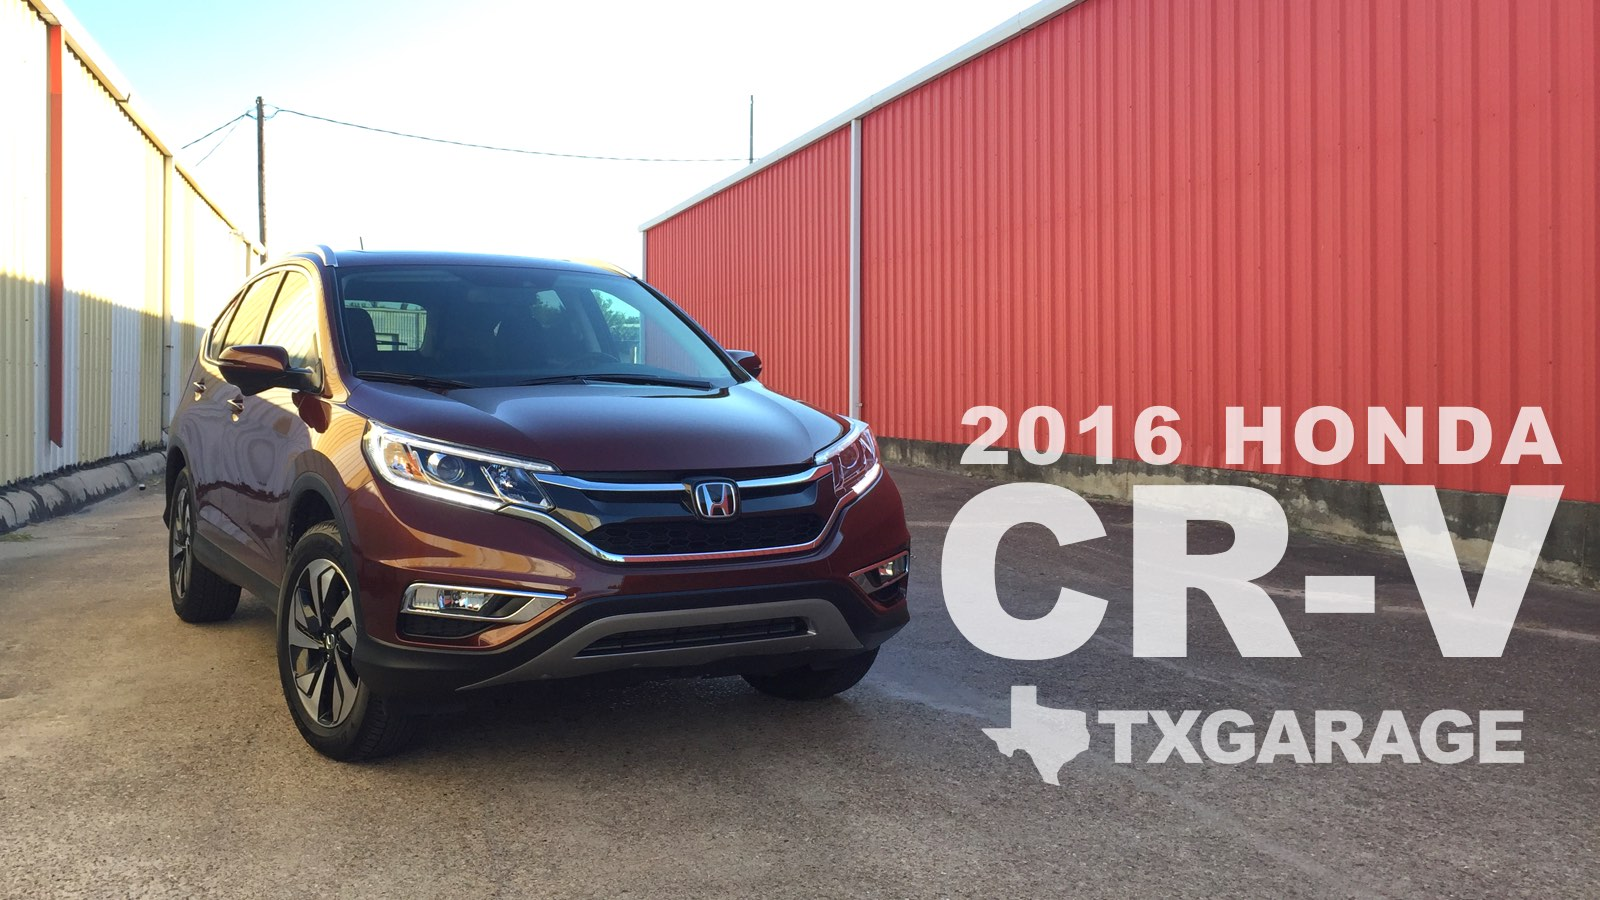 2016 Honda CR-V AWD Touring - reviewed by Adam Moore - txGarage